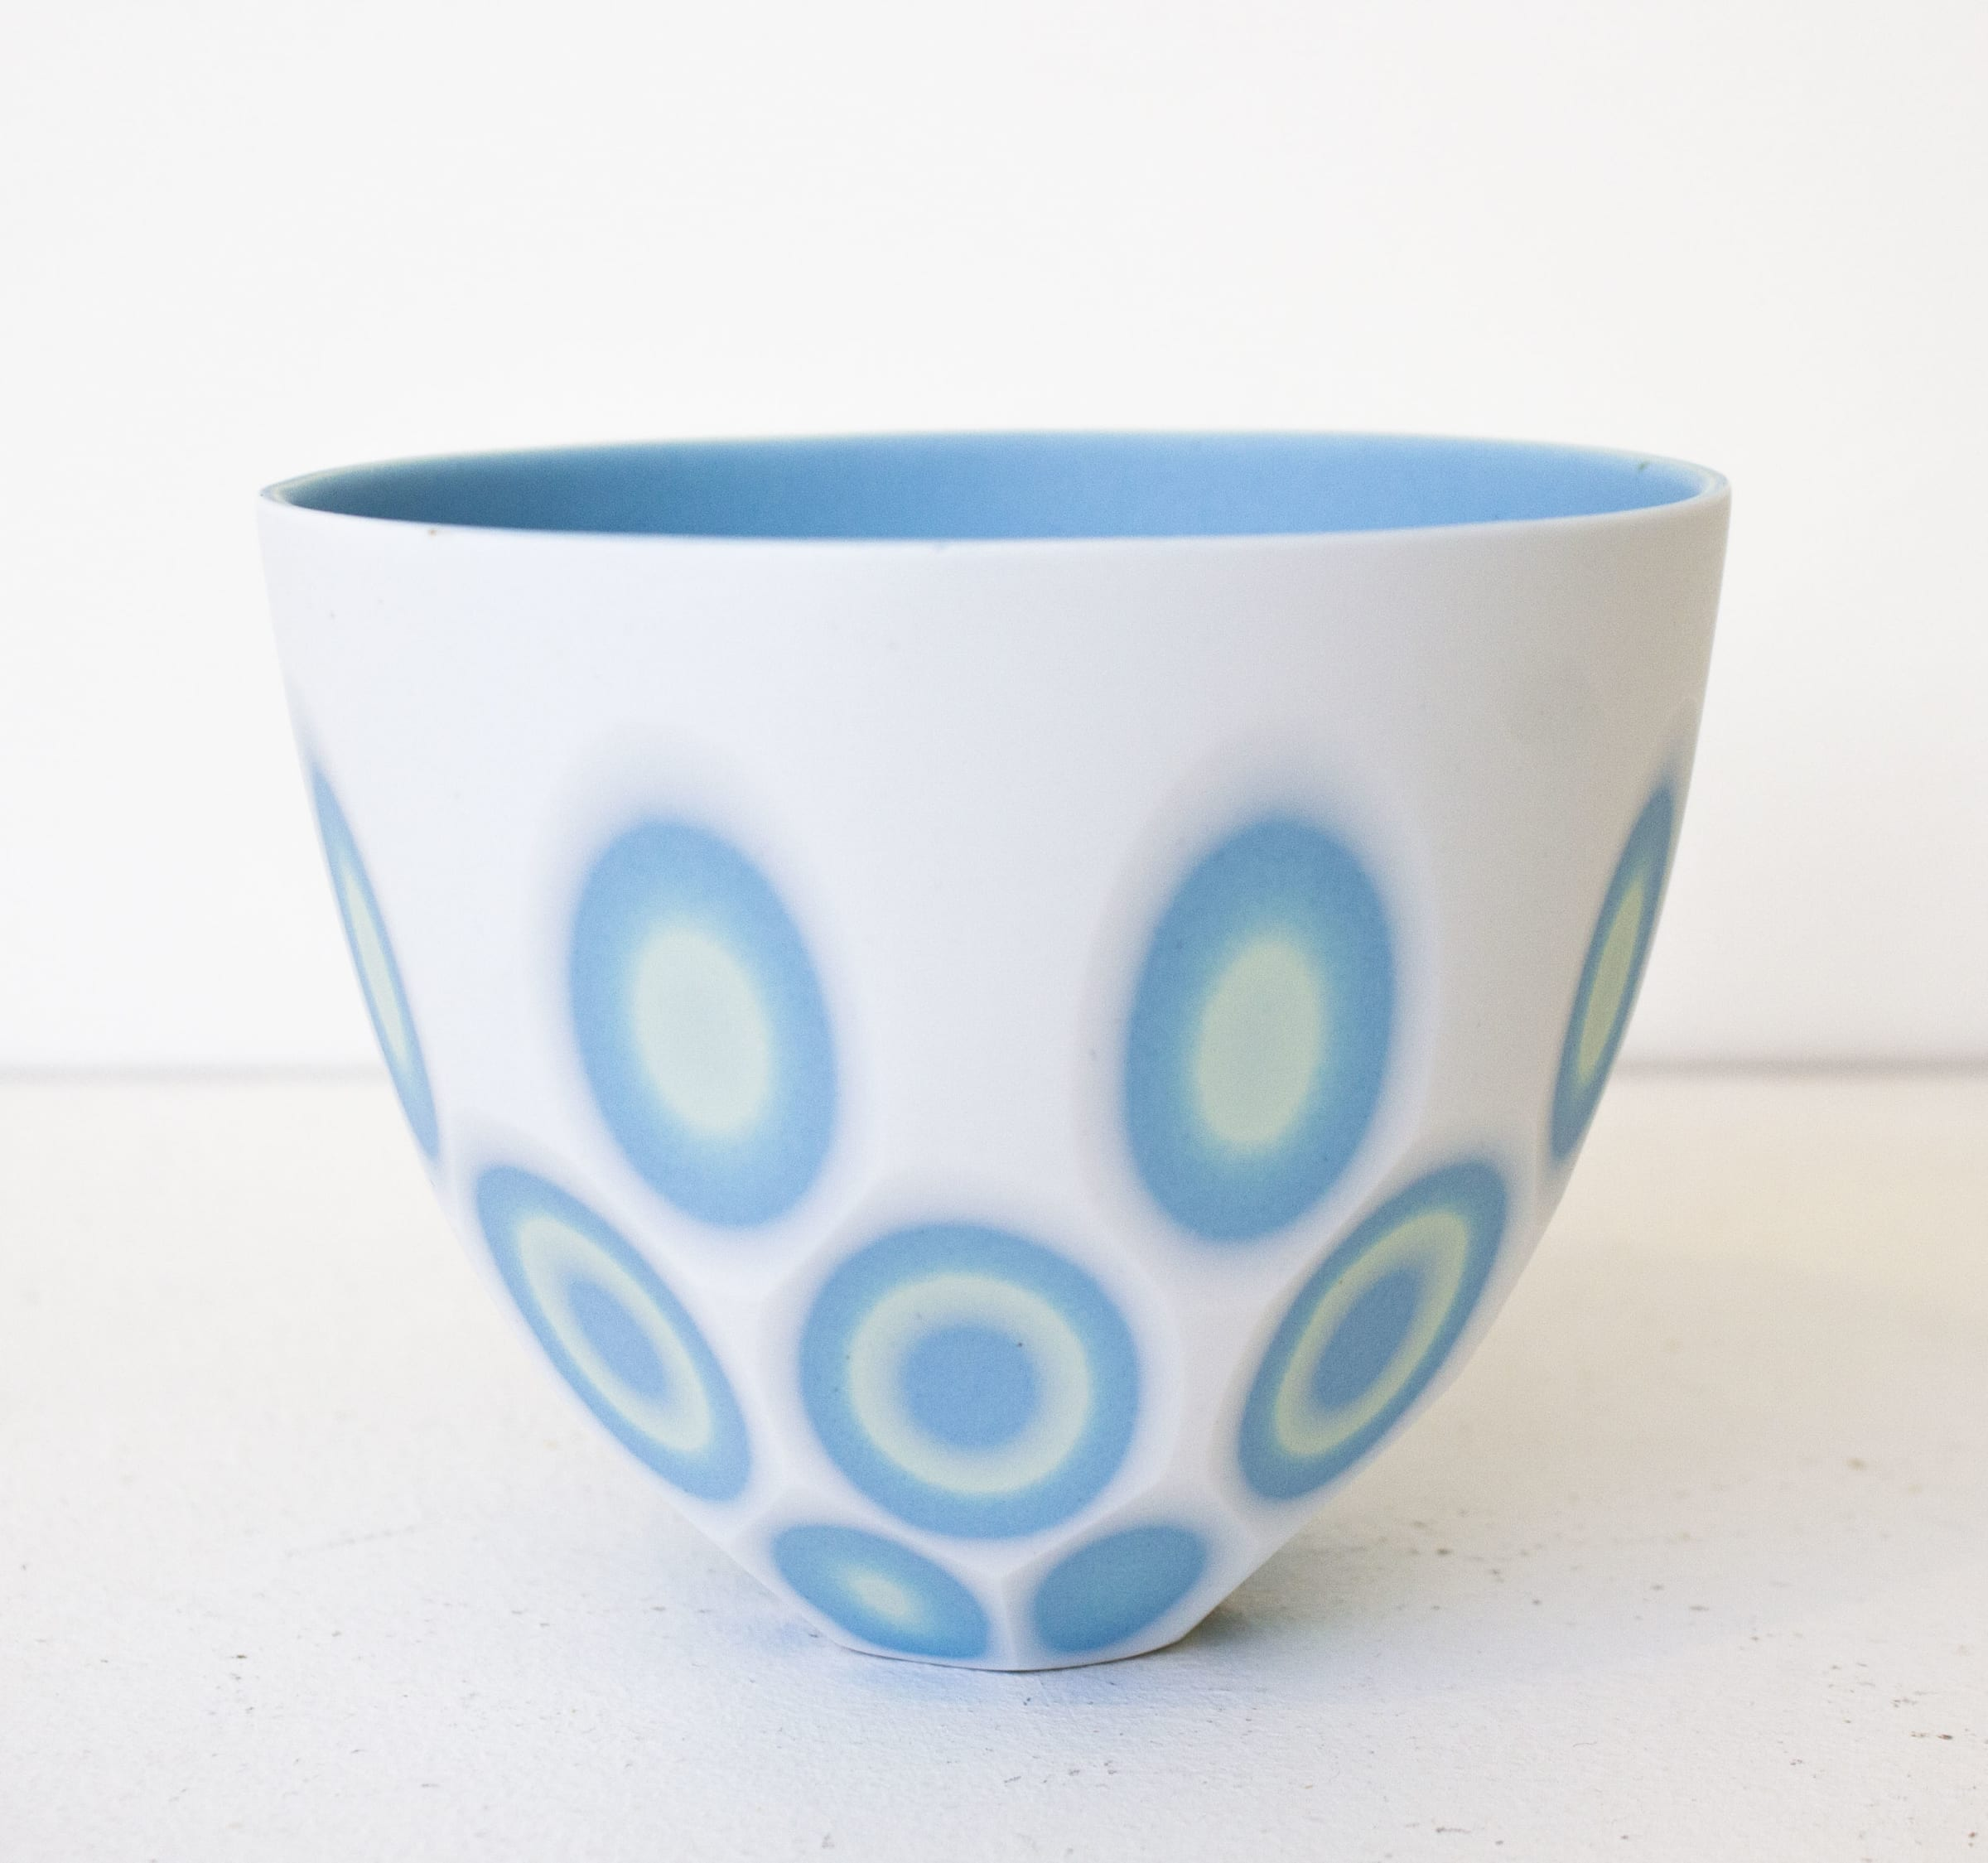 """<span class=""""link fancybox-details-link""""><a href=""""/artists/60-sasha-wardell/works/7787-sasha-wardell-white-space-round-bowl-2021/"""">View Detail Page</a></span><div class=""""artist""""><strong>Sasha Wardell</strong></div> <div class=""""title""""><em>White 'Space' Round Bowl</em>, 2021</div> <div class=""""medium"""">bone china</div> <div class=""""dimensions"""">h. 9 cm</div><div class=""""price"""">£190.00</div><div class=""""copyright_line"""">Own Art: £19 x 10 Months, 0% APR</div>"""